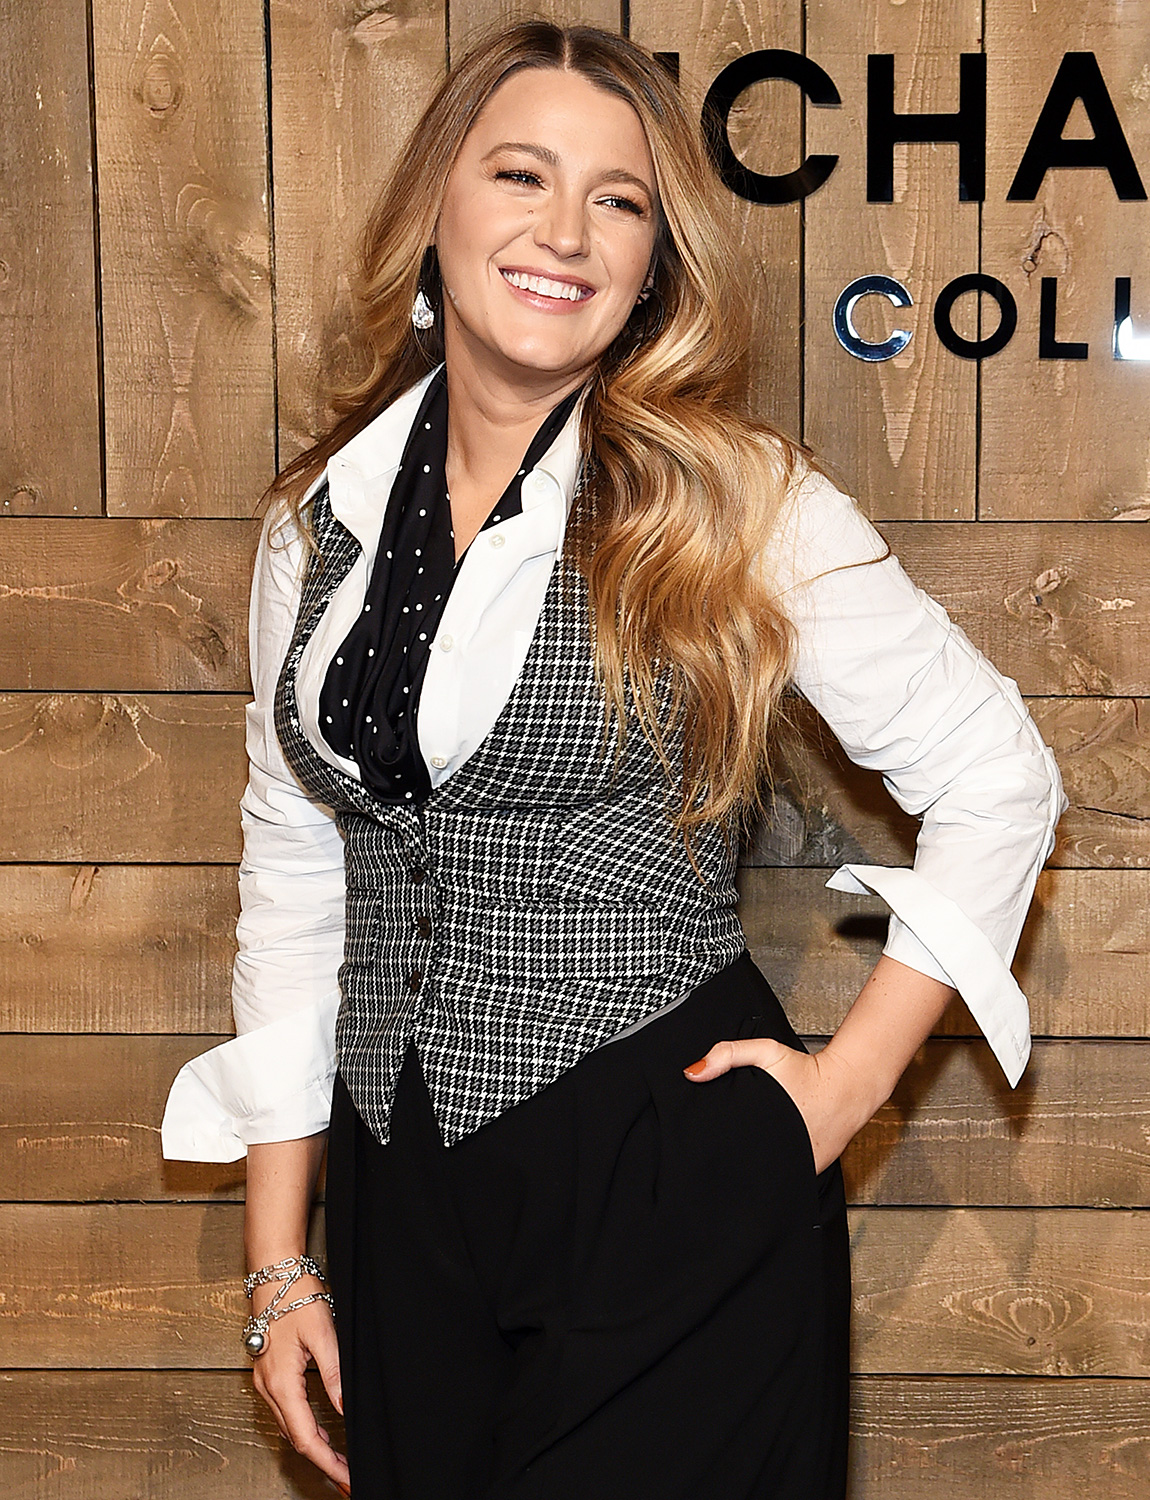 Blake Lively attends the Michael Kors FW20 Runway Show on February 12, 2020 in New York City